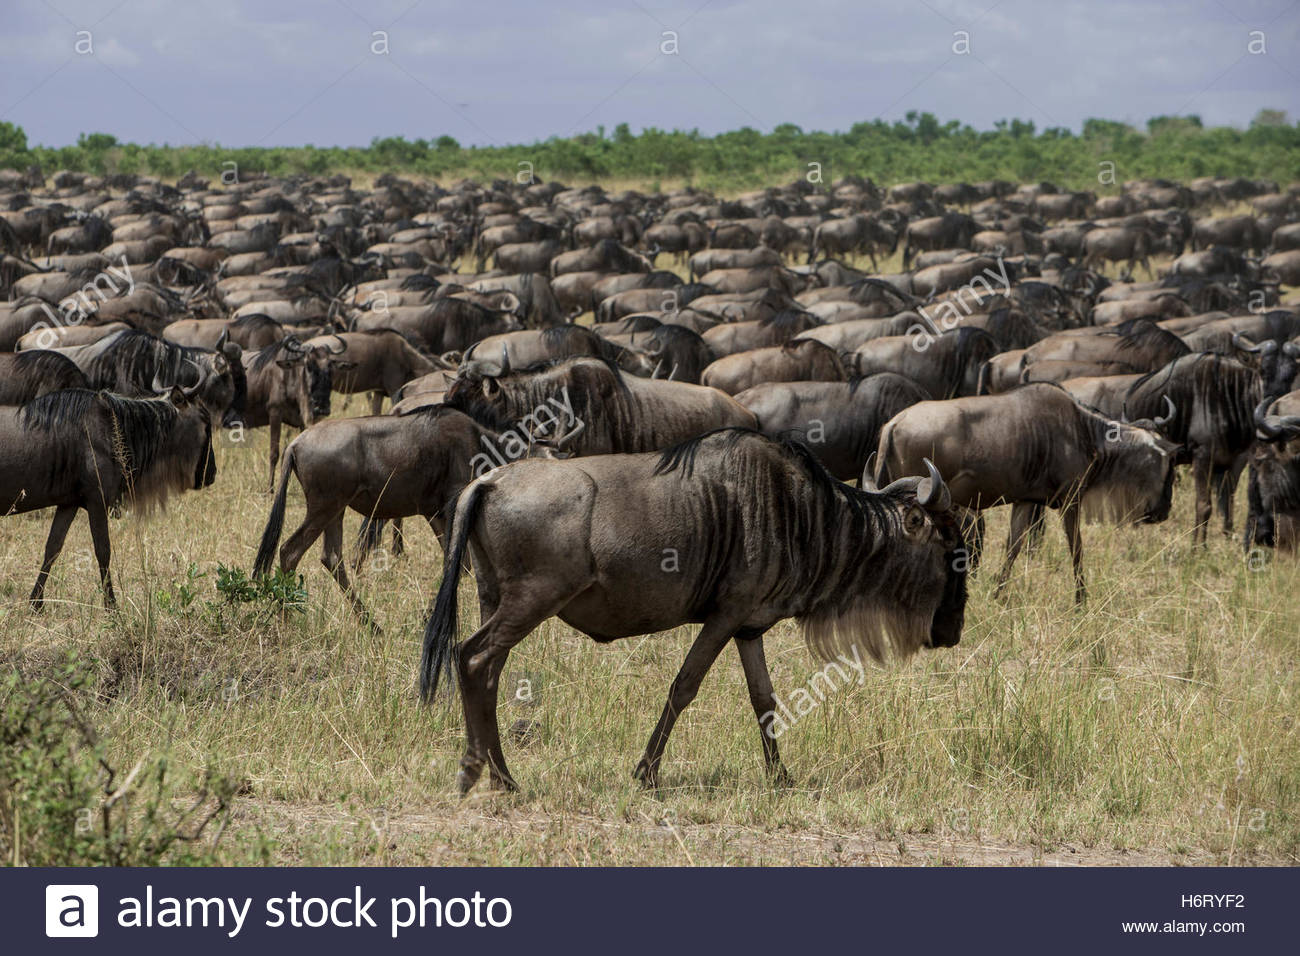 Herd of Wildebeests in Masai Mara National Reserve. Stock Photo